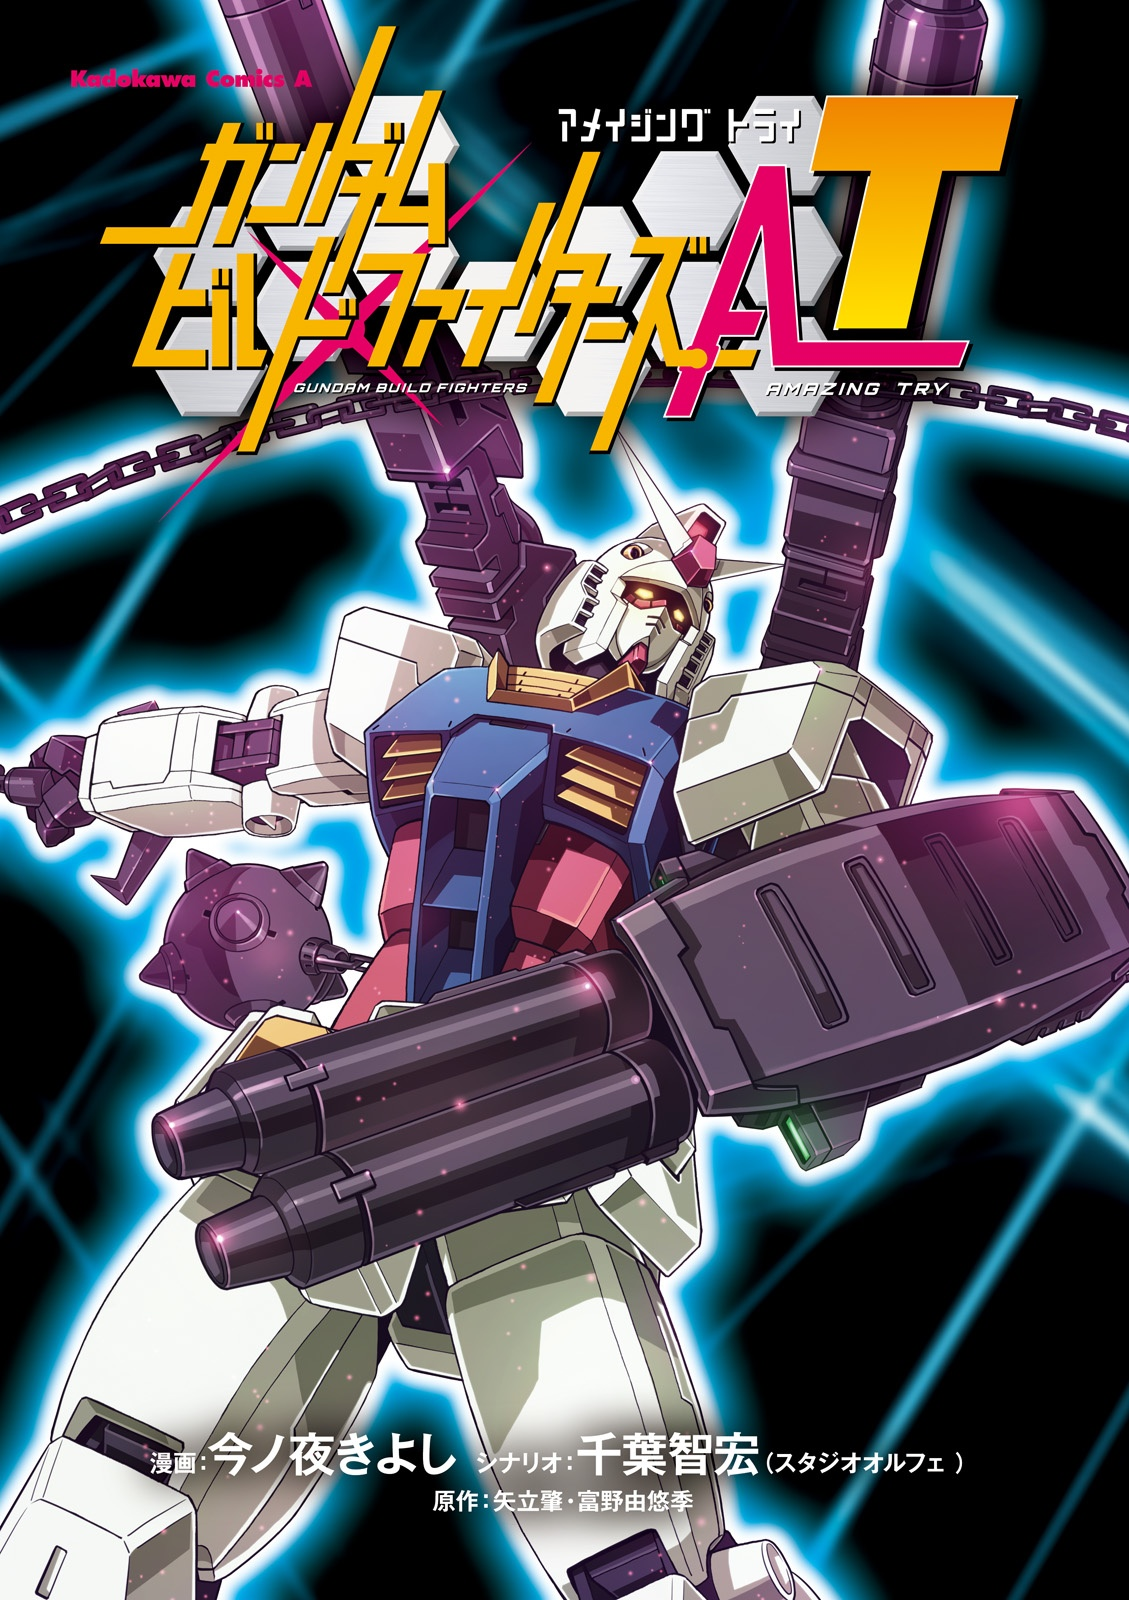 Gundam build fighters at amazing try release info for Domon in gundam build fighters